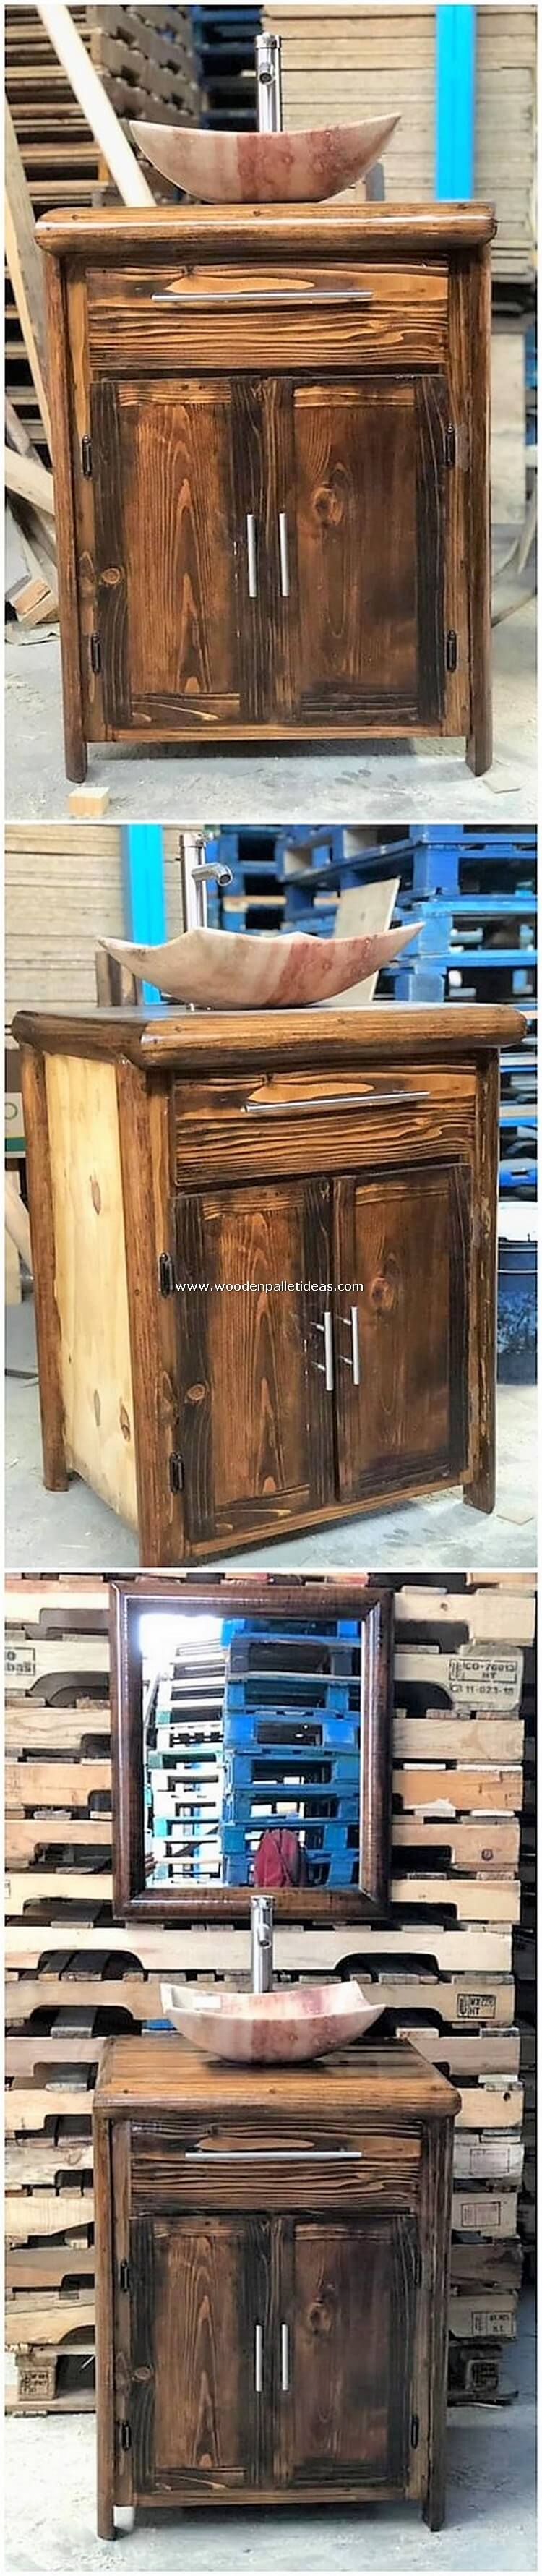 Wooden-Pallet-Sink-with-Cabinet